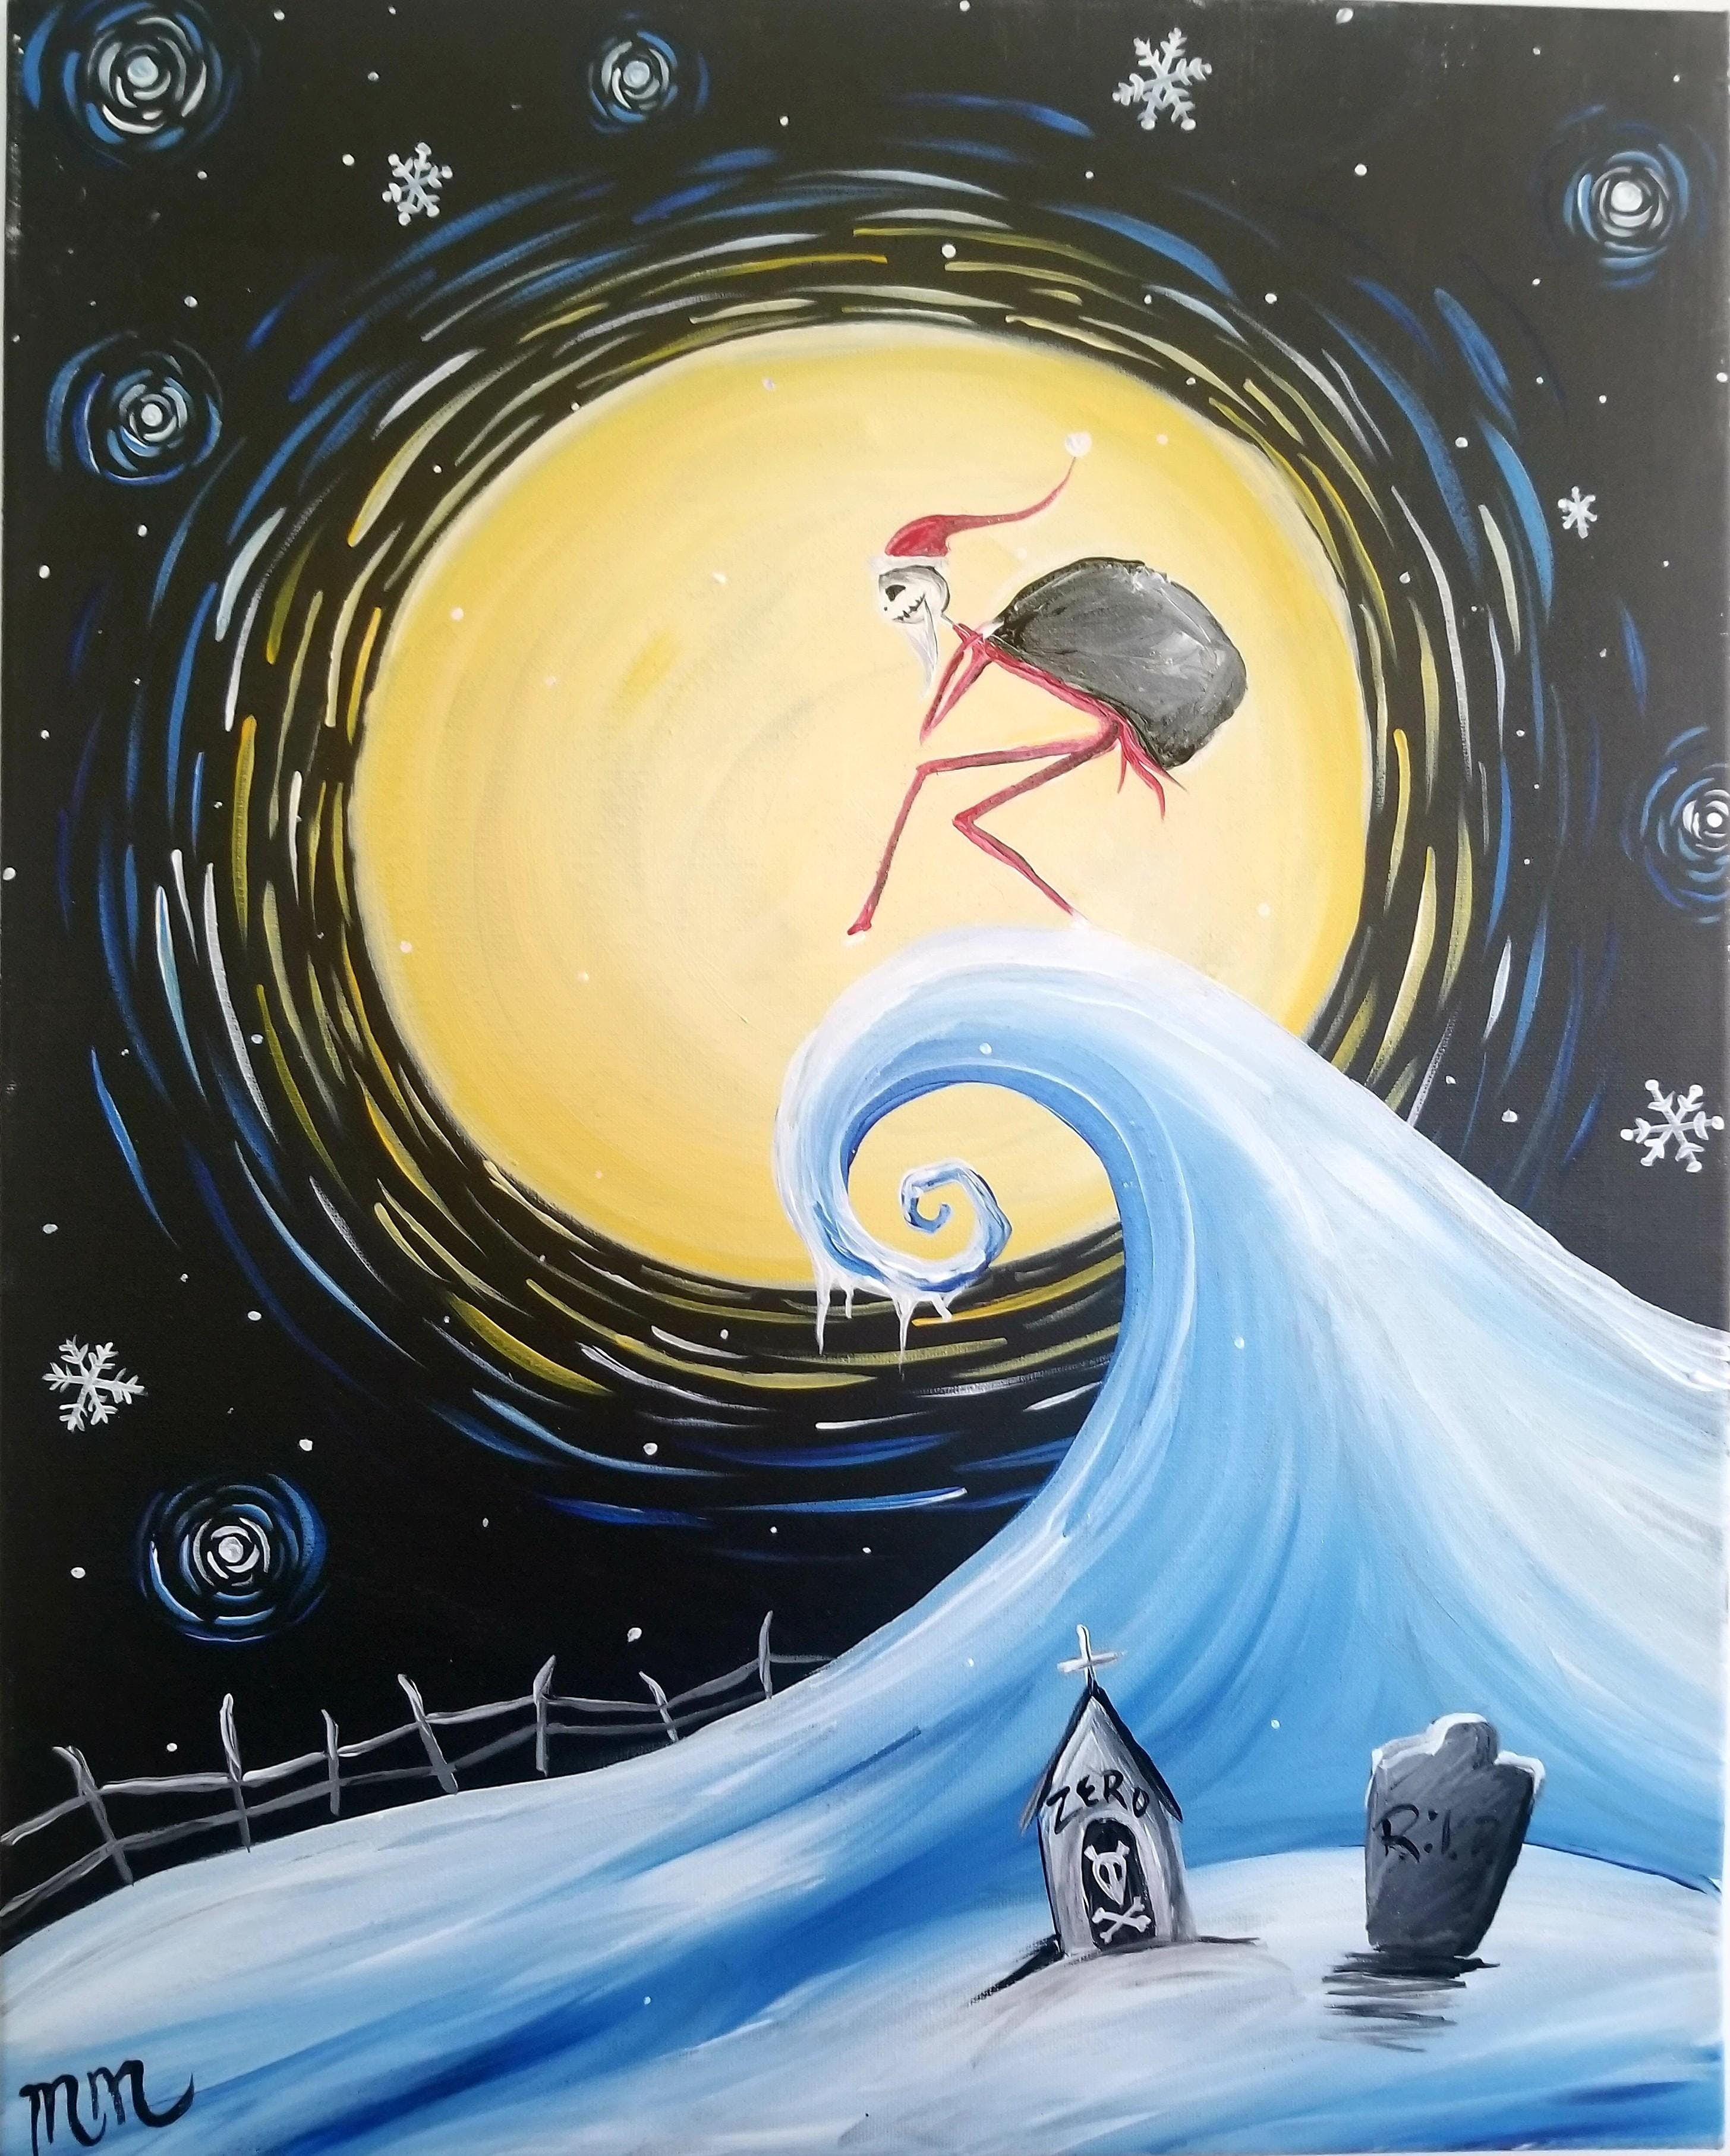 Twas the Nightmare Before Christmas Paint and Pint - 26 NOV 2018